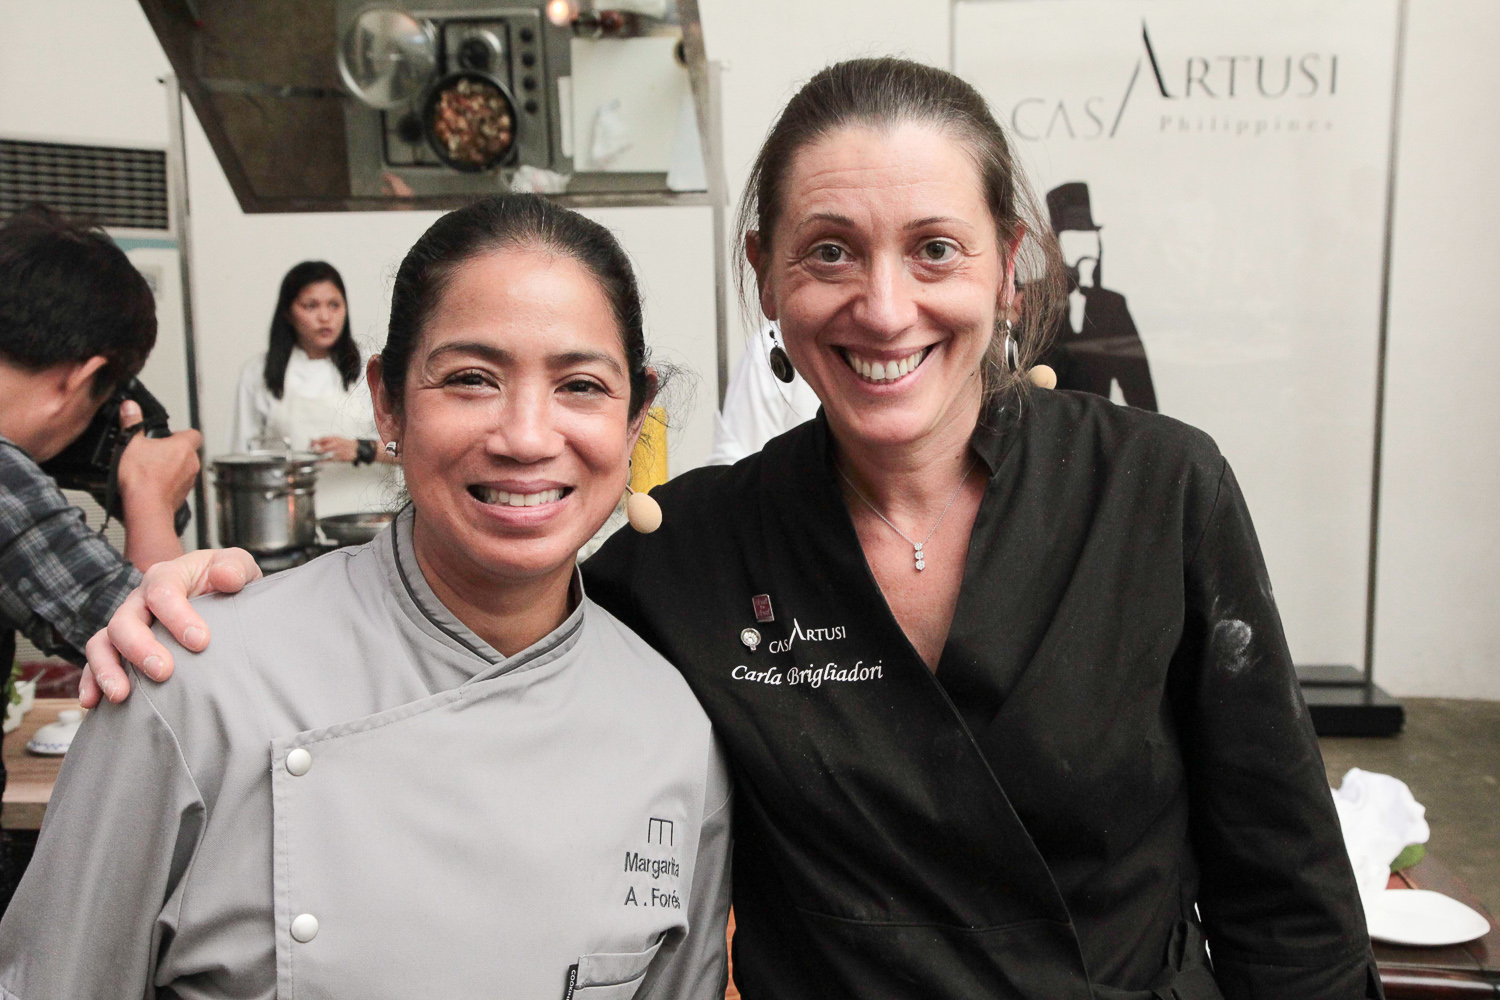 Margarita Forés of Casa Artusi Philippines with Carla righ